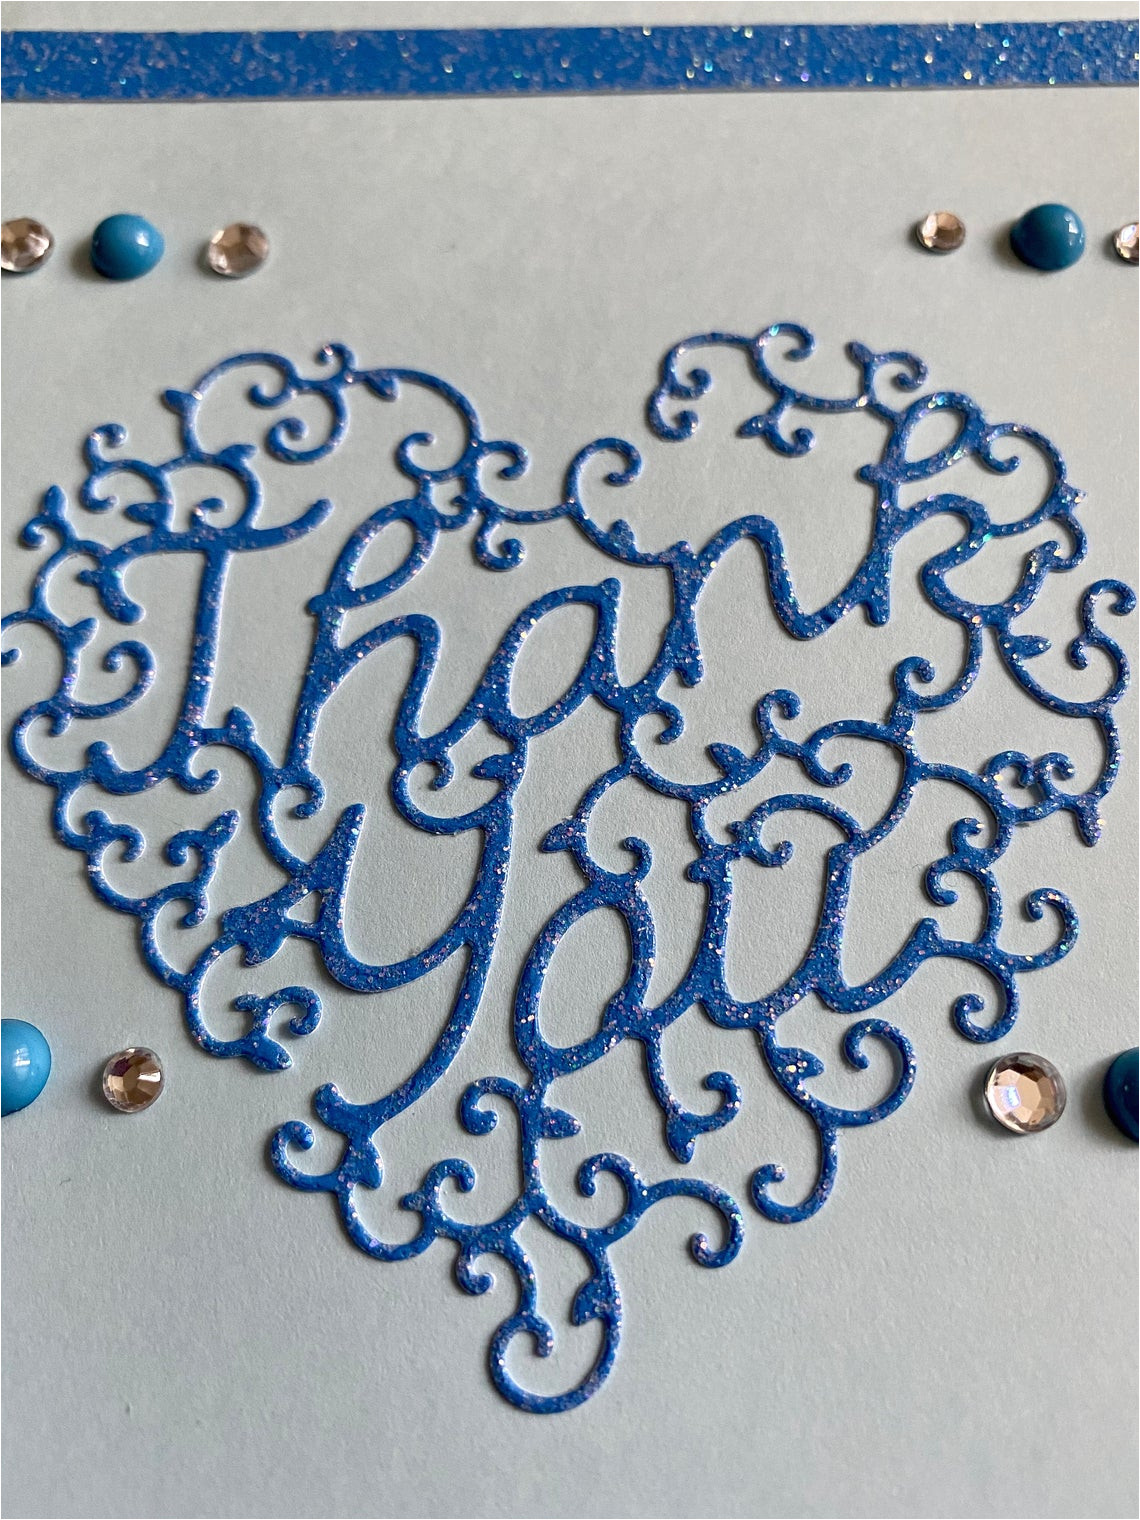 handmade thank you card 4 x 6 inches